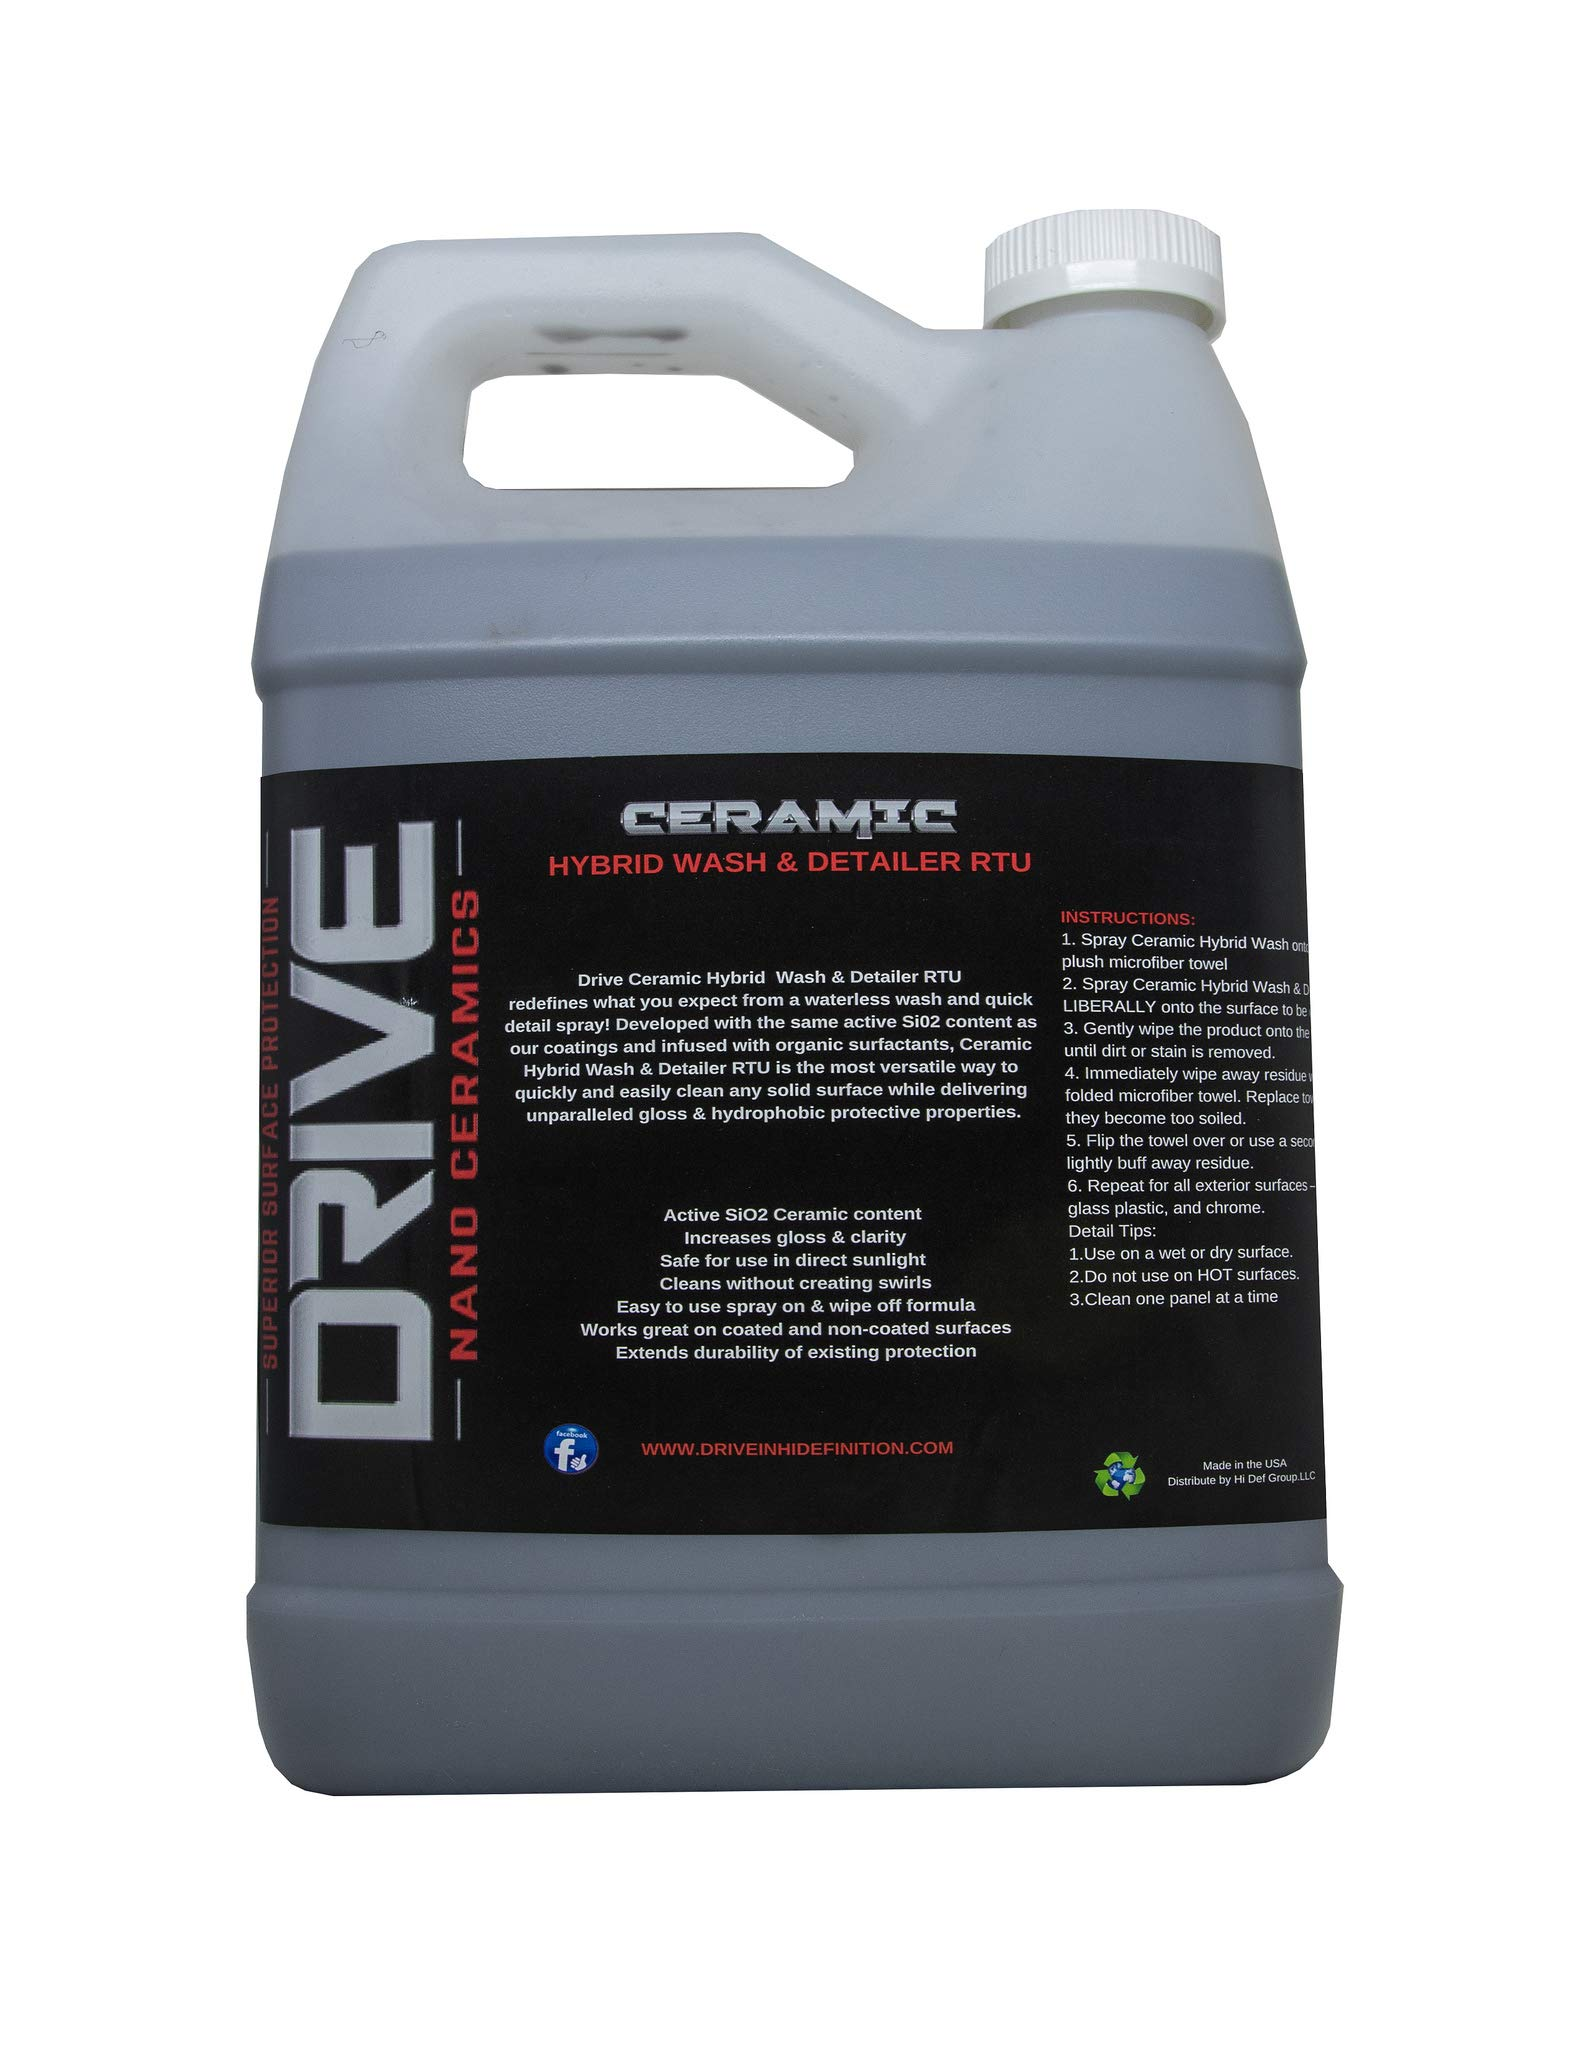 Drive Auto Appearance Ceramic Infused Waterless Wet Or Dry Wash & Gloss (1 Gallon) Perfect for Cars, Boats, RVs, Motorcycles. Safe for Chrome, Glass, Wheels, Vinyl, Aluminum, Plastic